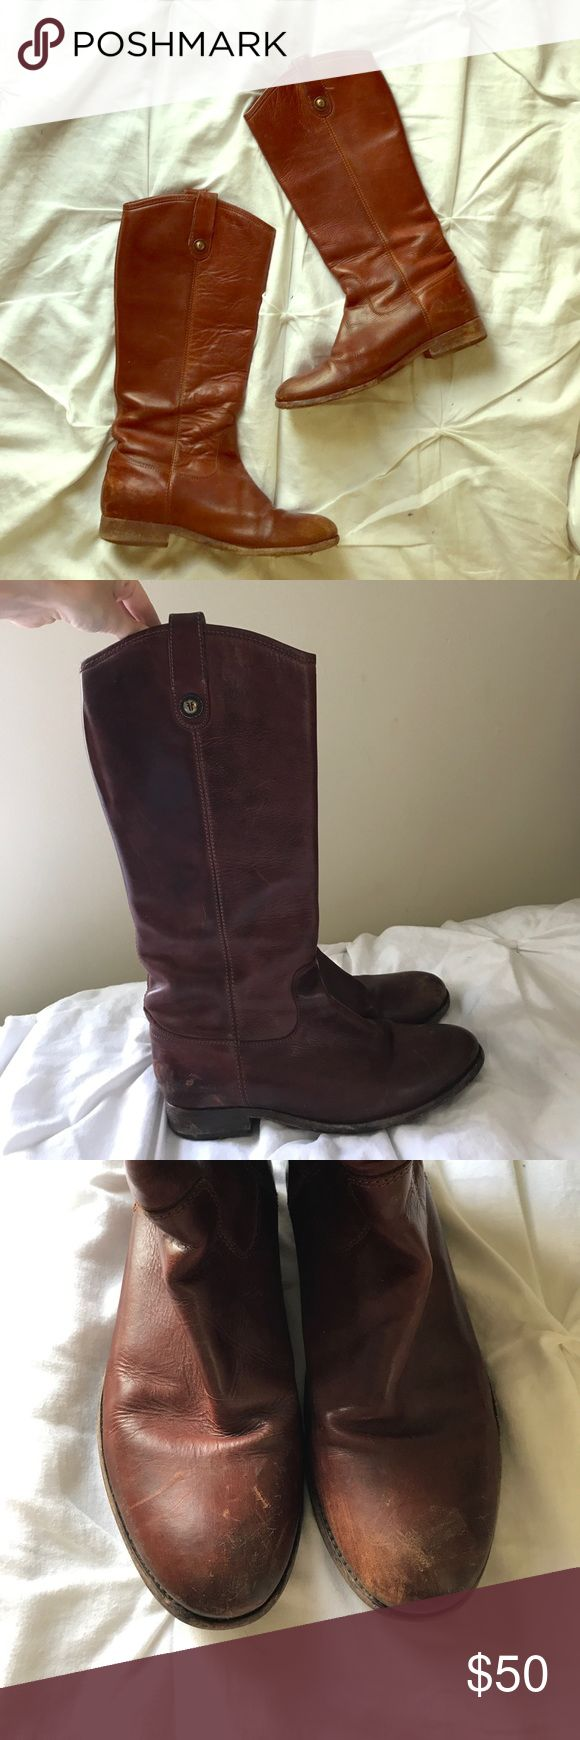 Frye Melissa Button Boots Well worn Frye Melissa Button Boots. Broken in and very soft! A few scuffs around the heels and toes, as seen in pictures. Otherwise, leather is in great condition. Frye Shoes Winter & Rain Boots